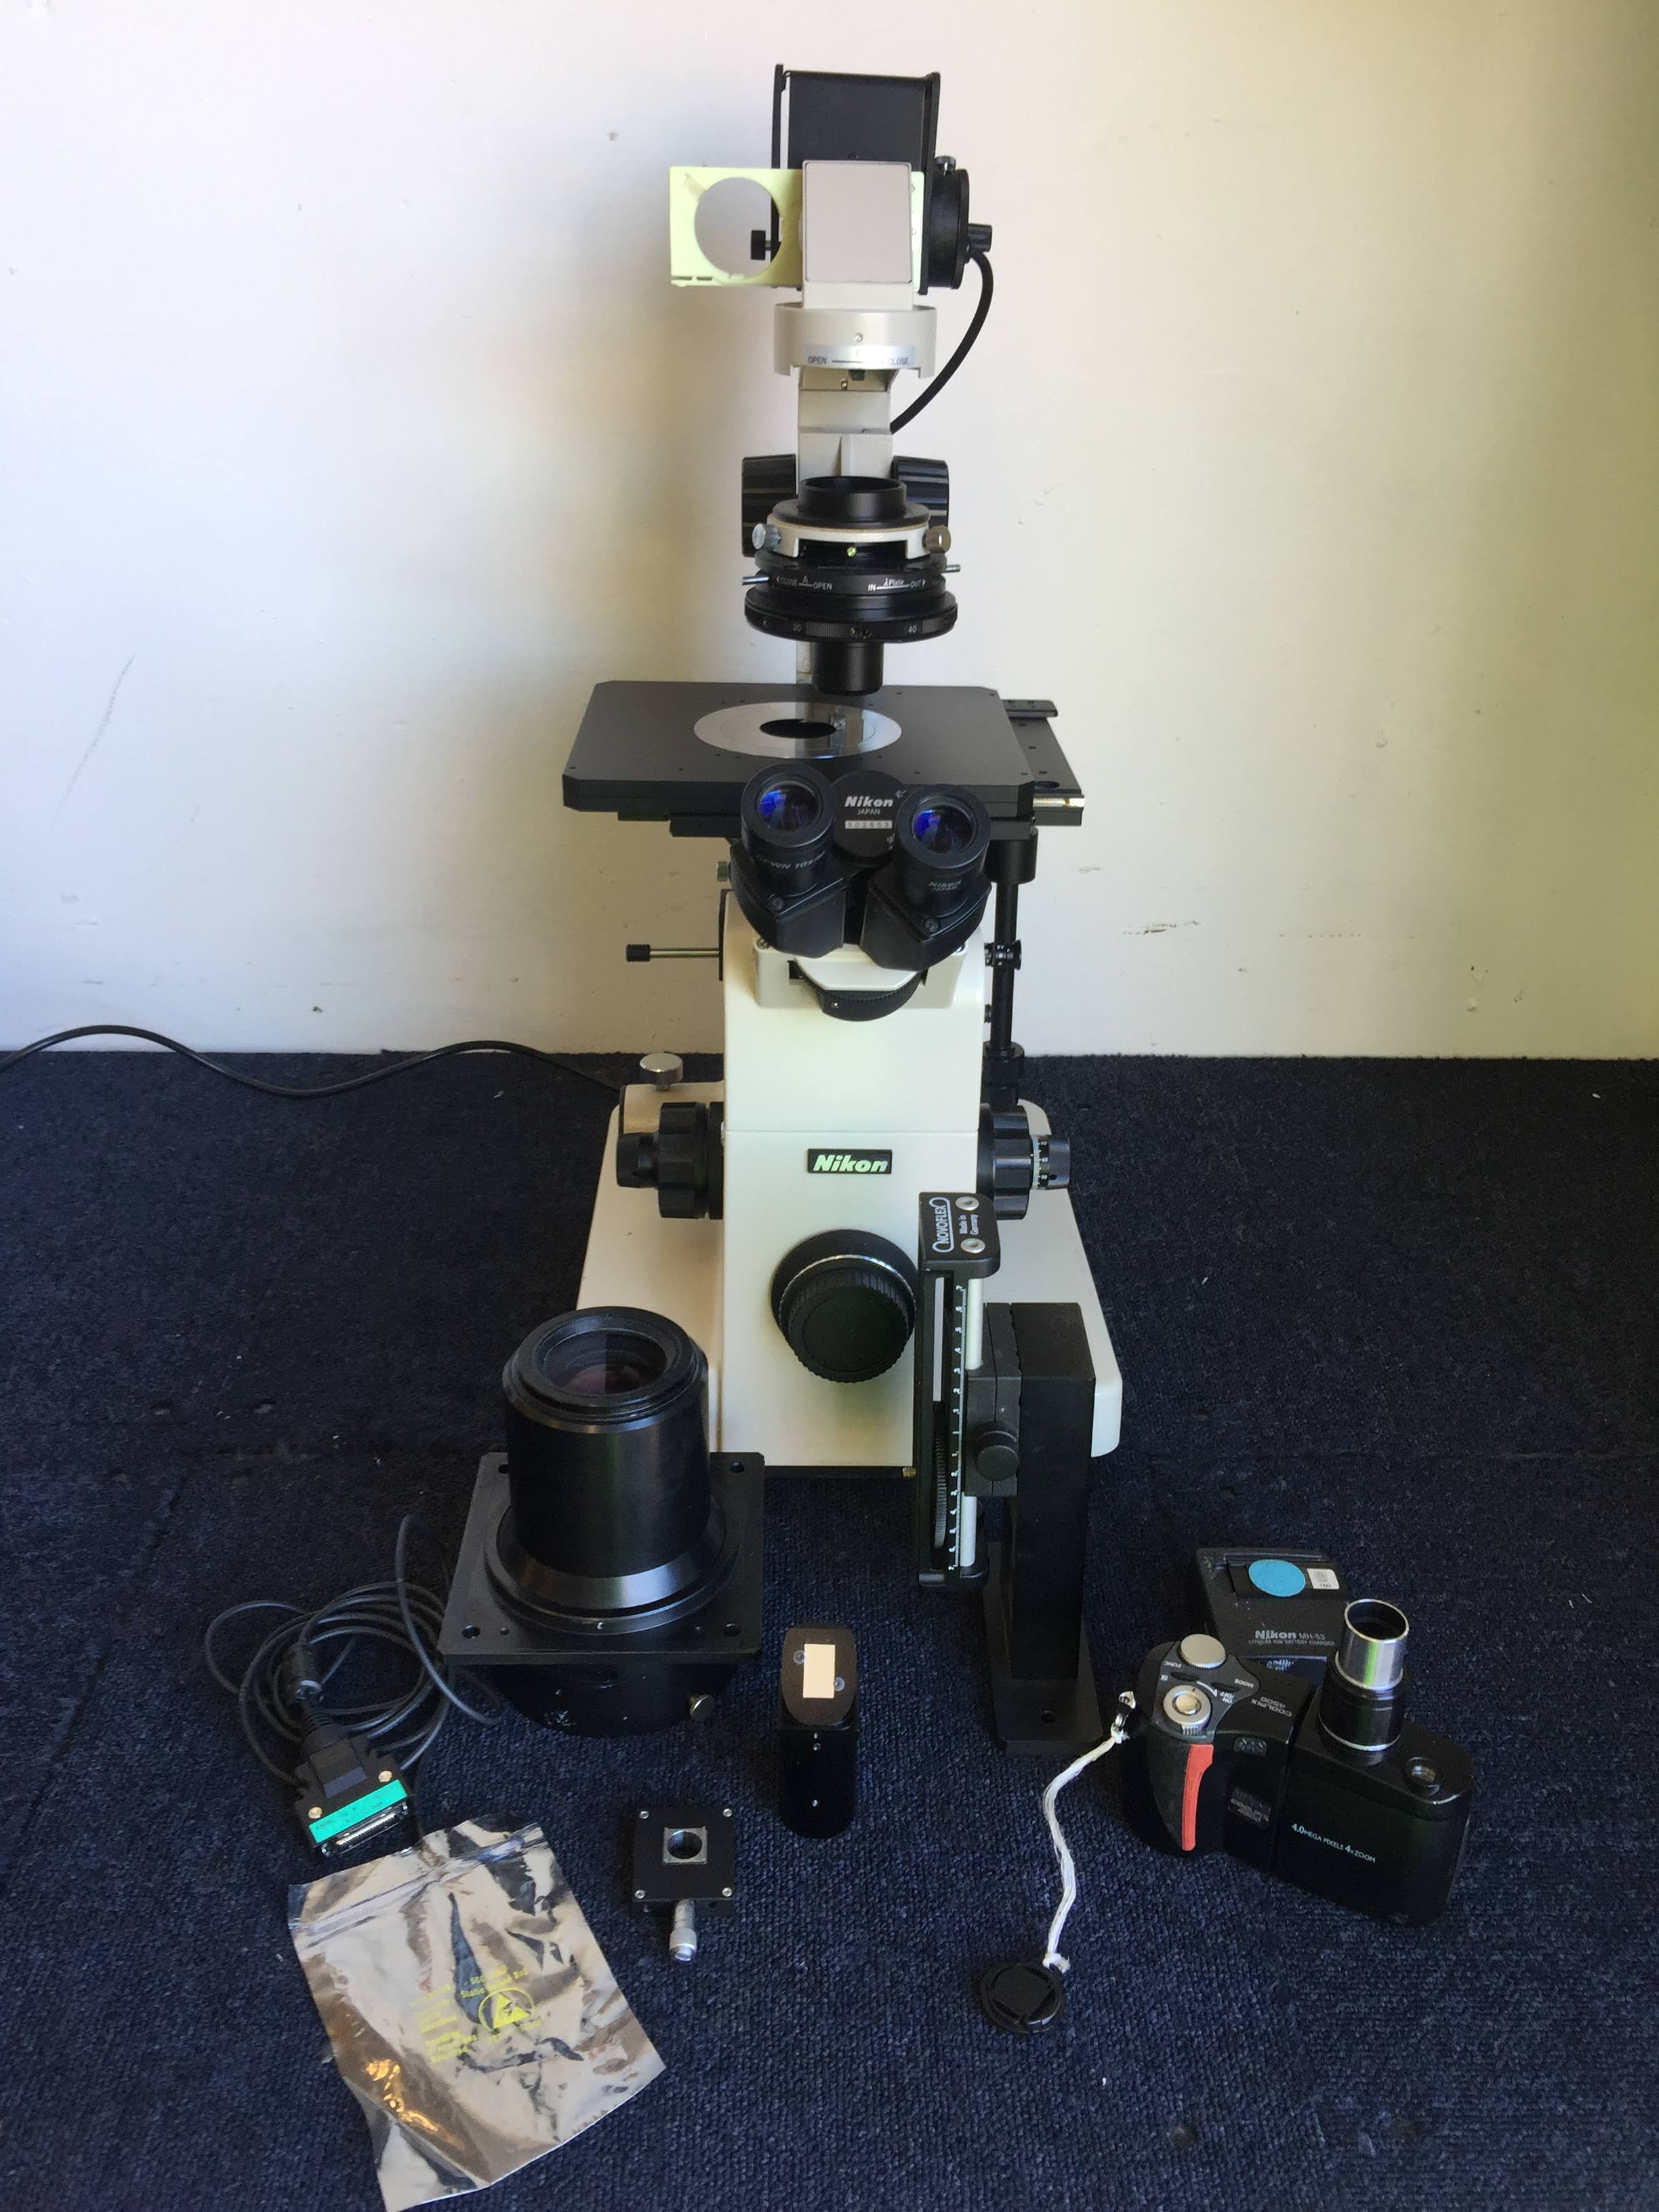 Nikon Diaphot Microscope with Accessories